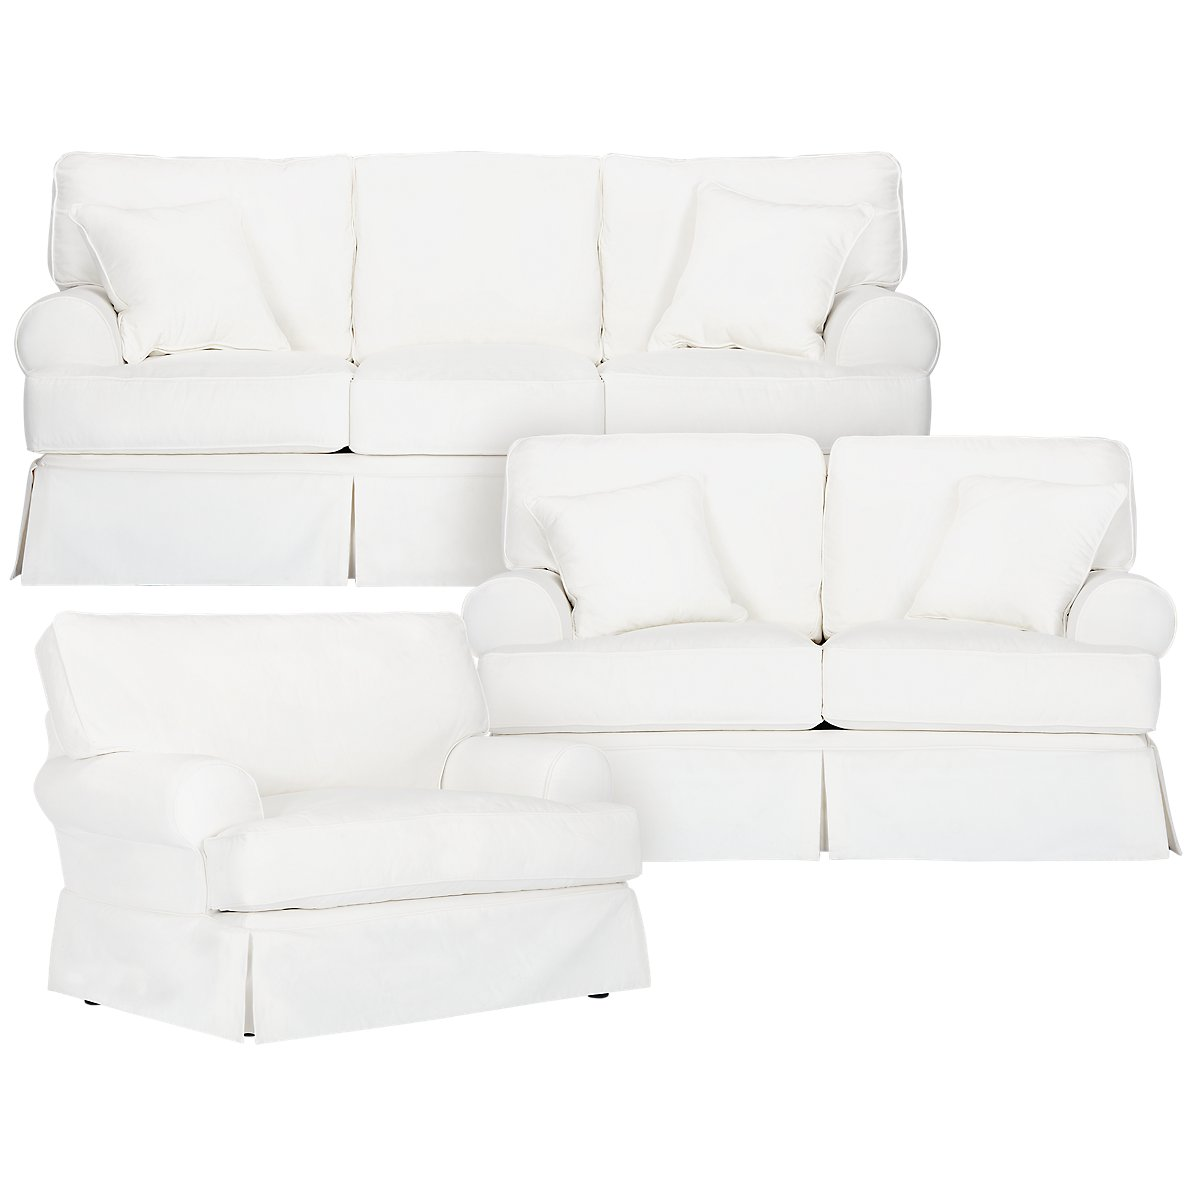 Harris White Fabric Sofa. VIEW LARGER